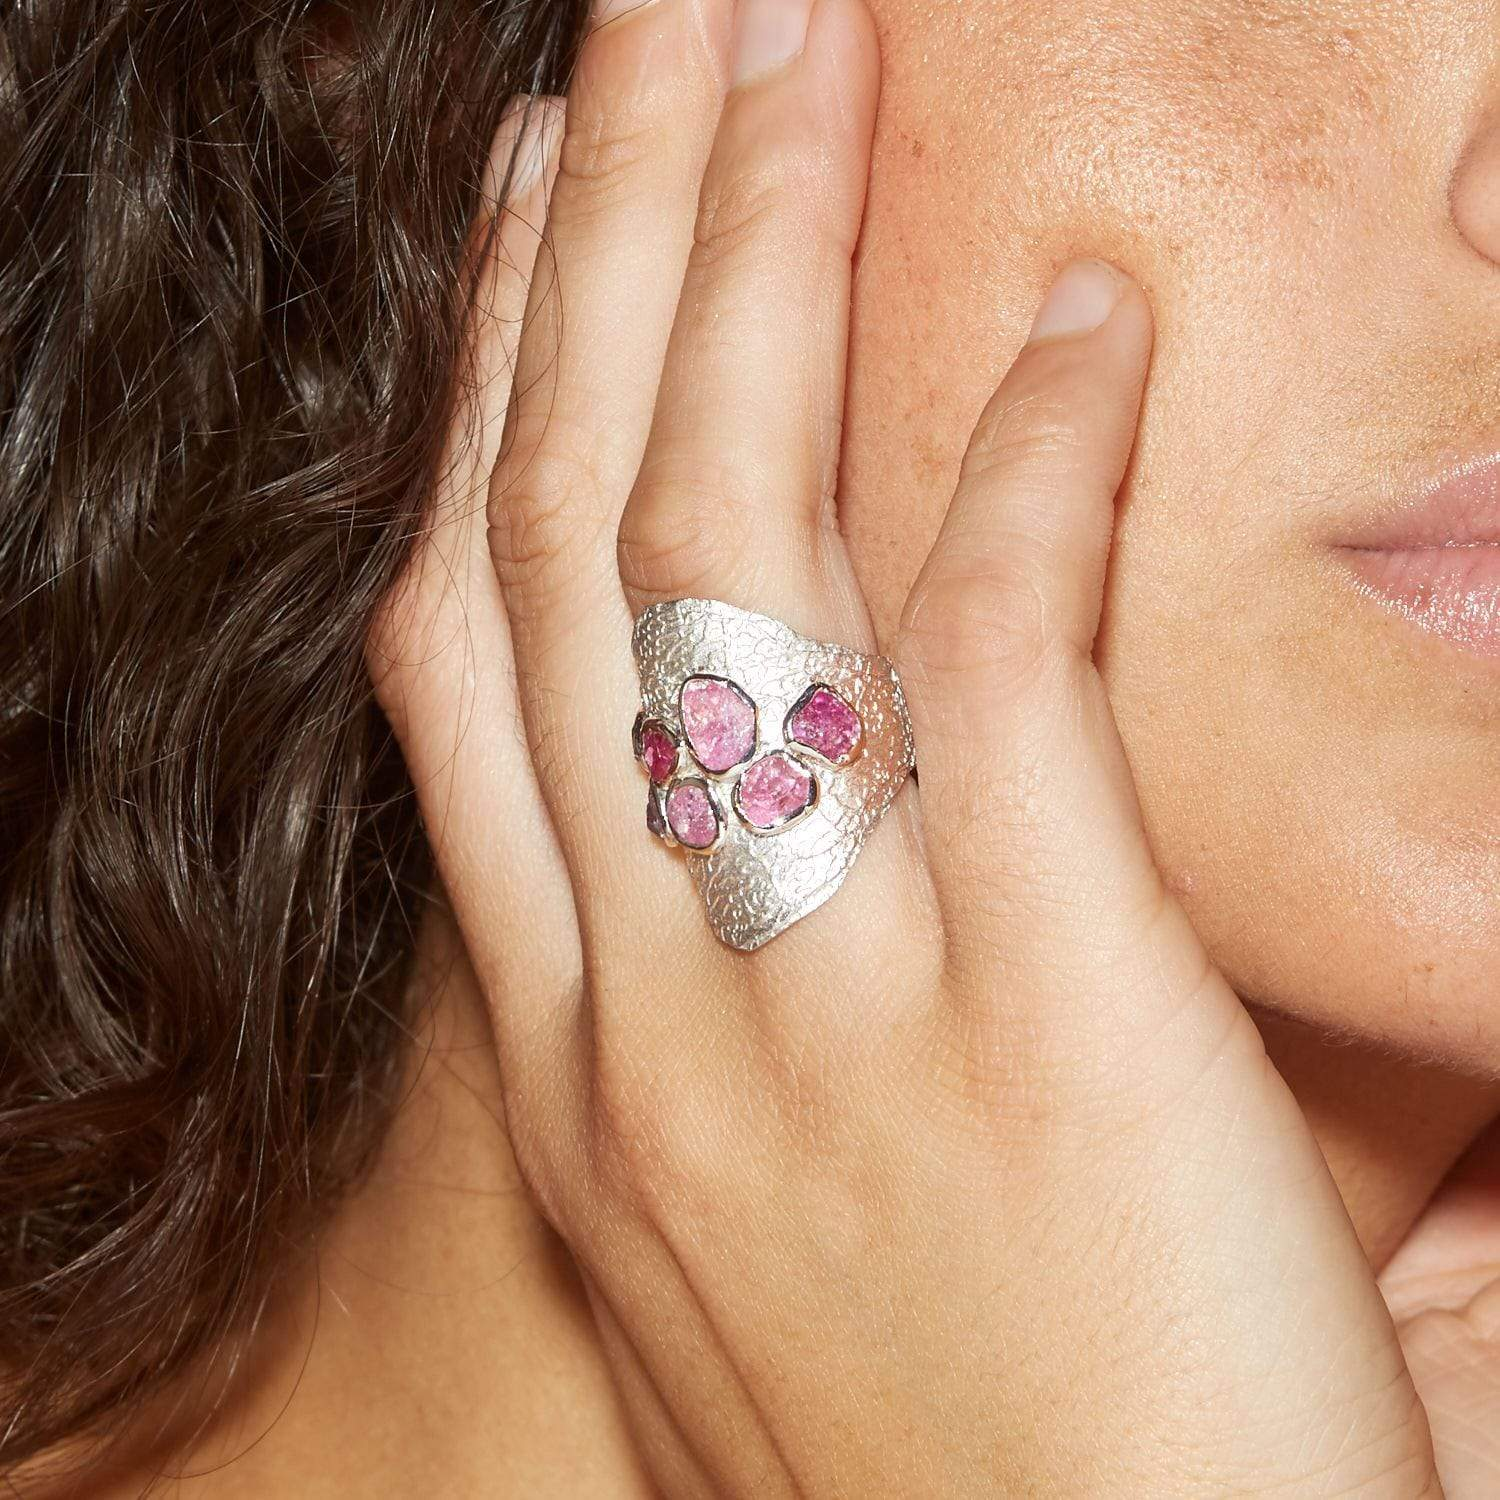 Dalia Ring, Handmade, Rhodium, Sapphire, silver, spo-disabled, StoneColor:Pink, Style:Everyday, Type:StoneCandyScattered Ring